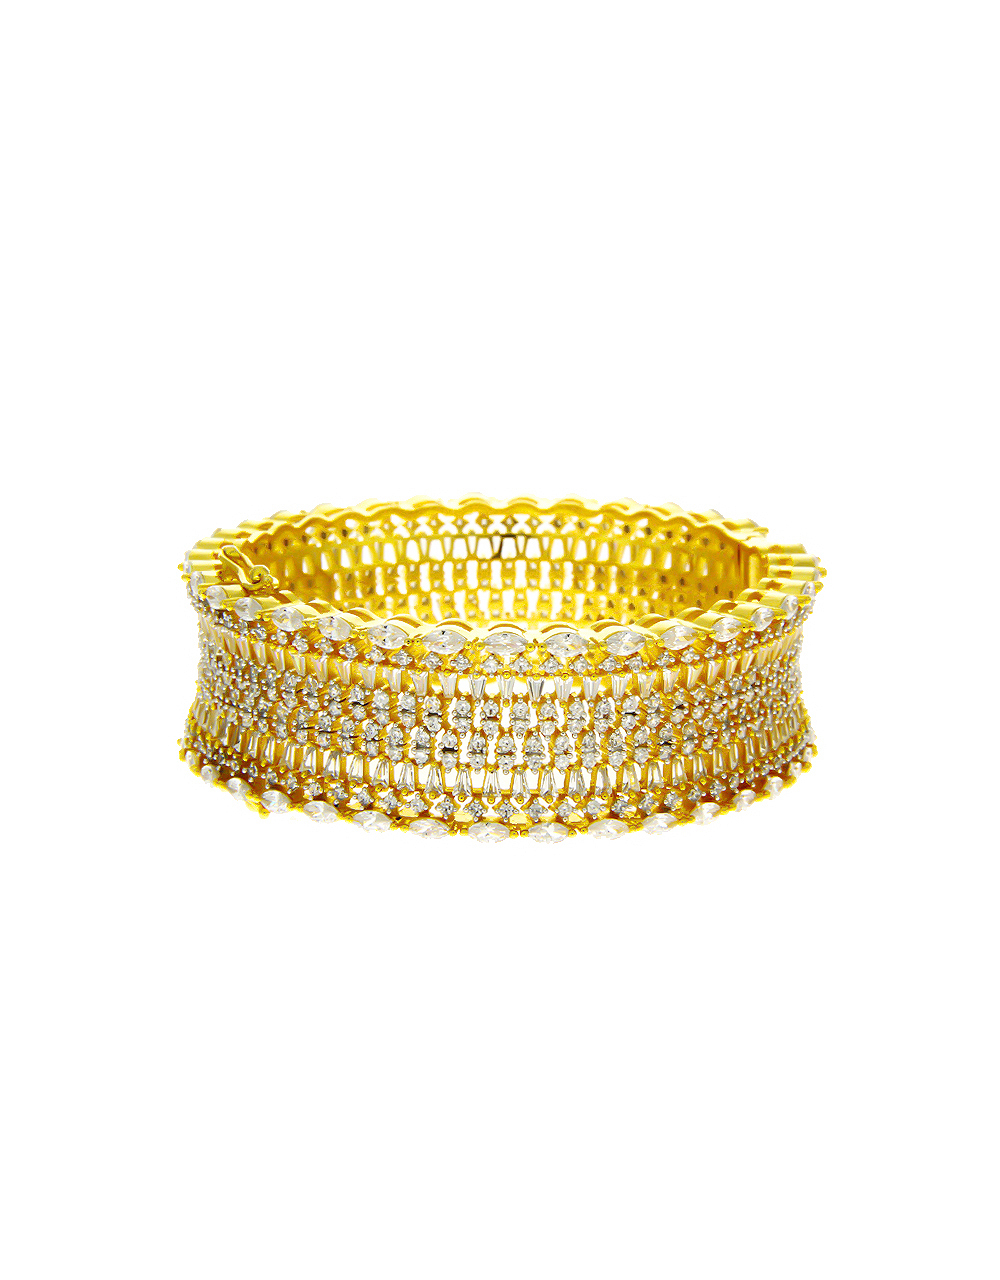 Anuradha Art Gold Finish Designer Fancy Party Wear Hand Bracelet//Kada for Women//Girls